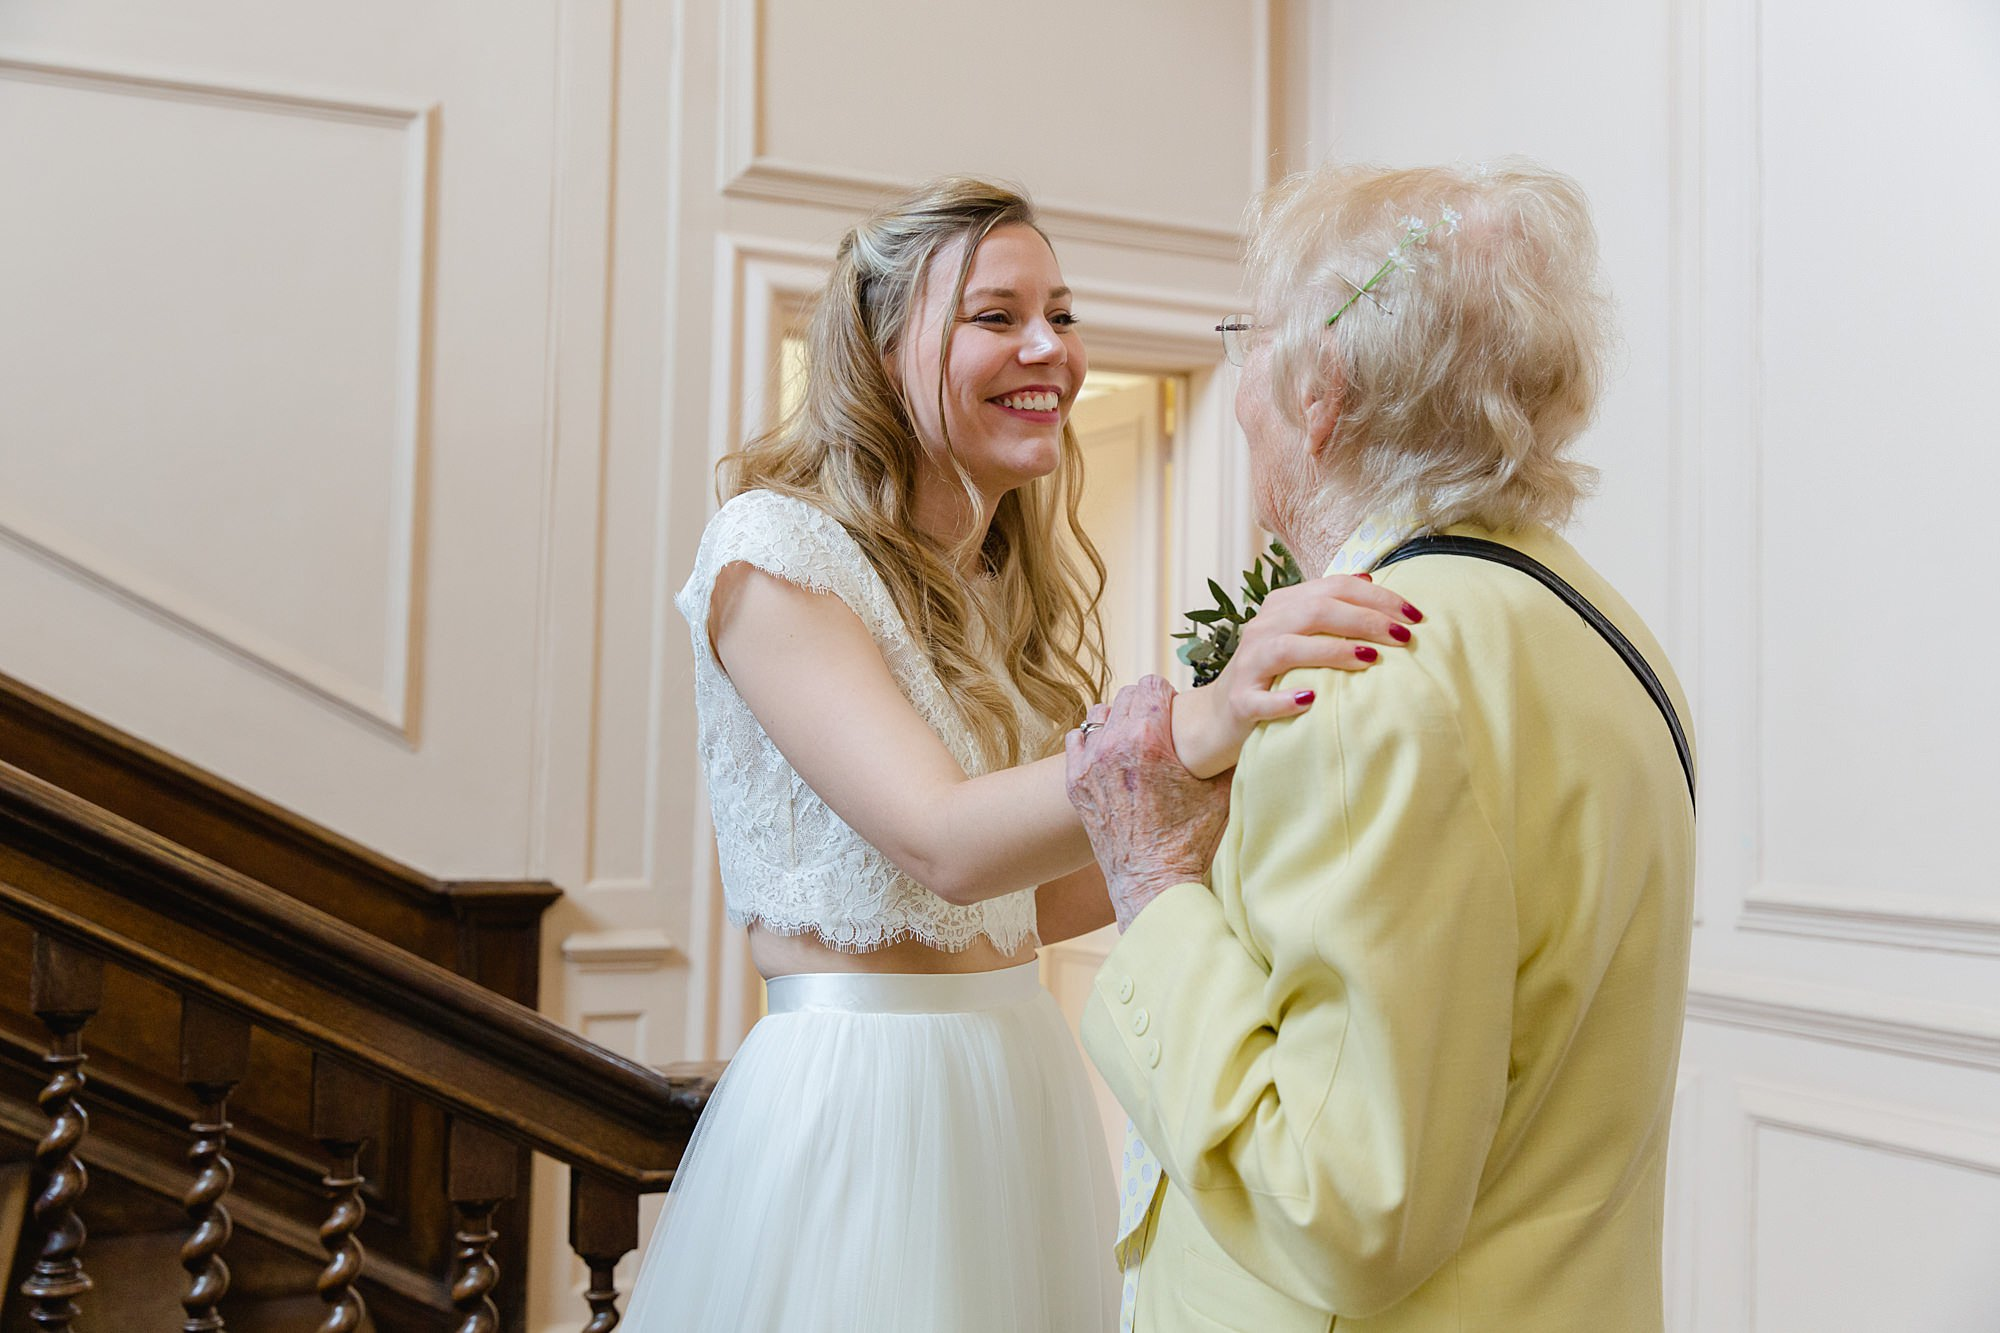 shaw house wedding bride greets her grandmotherportrait of bride greeting her grandmother after shaw house wedding ceremony